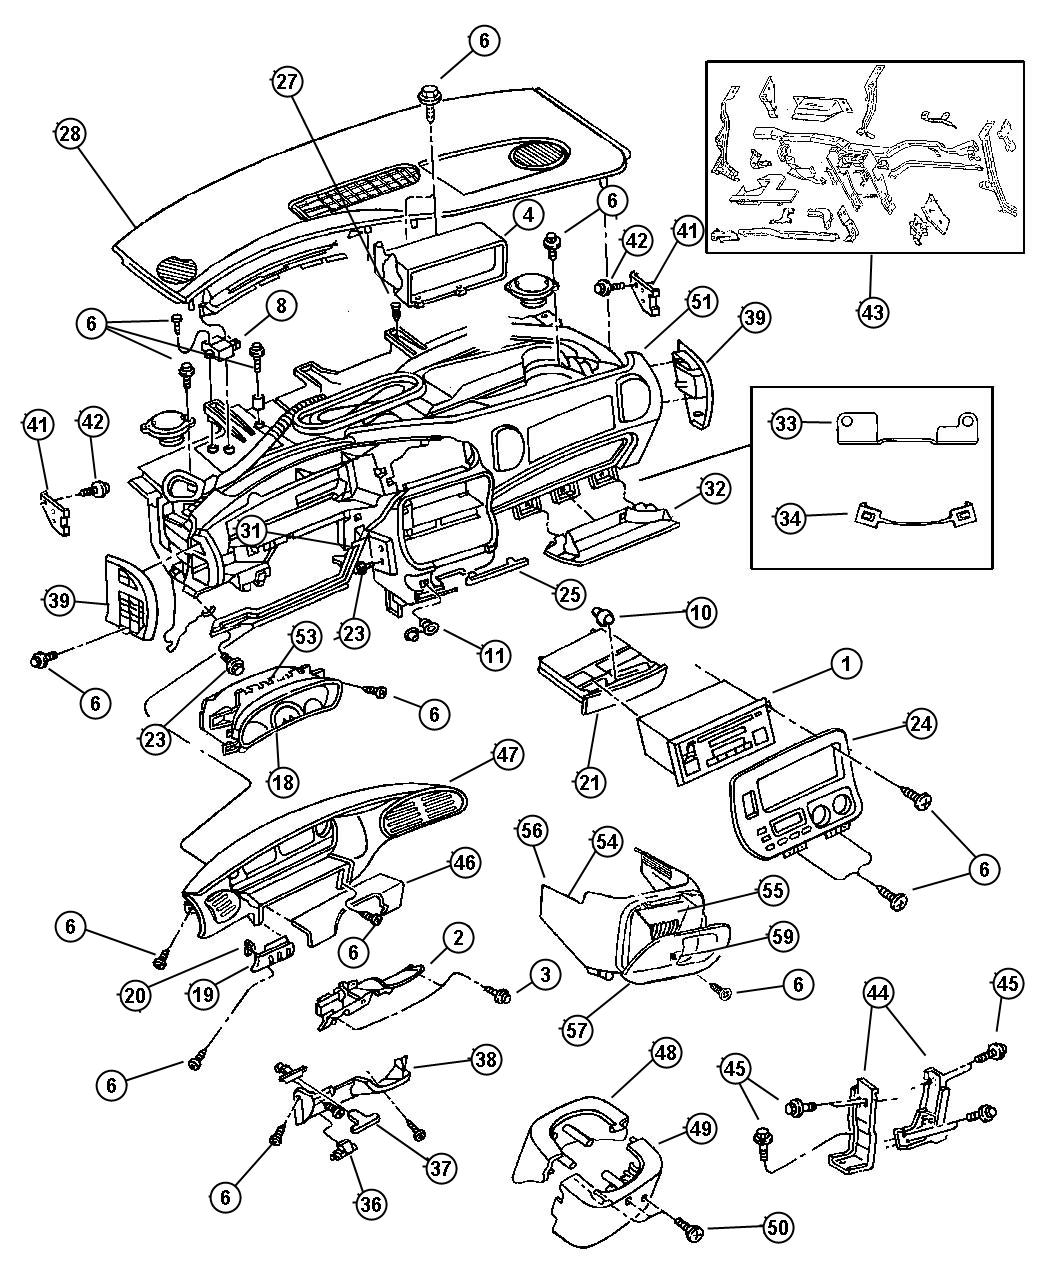 Plymouth Engine Parts Diagram Opinions About Wiring 2002 Town Country 1997 Voyager Schematics Diagrams U2022 Rh Parntesis Co Auto Mobile Chevrolet